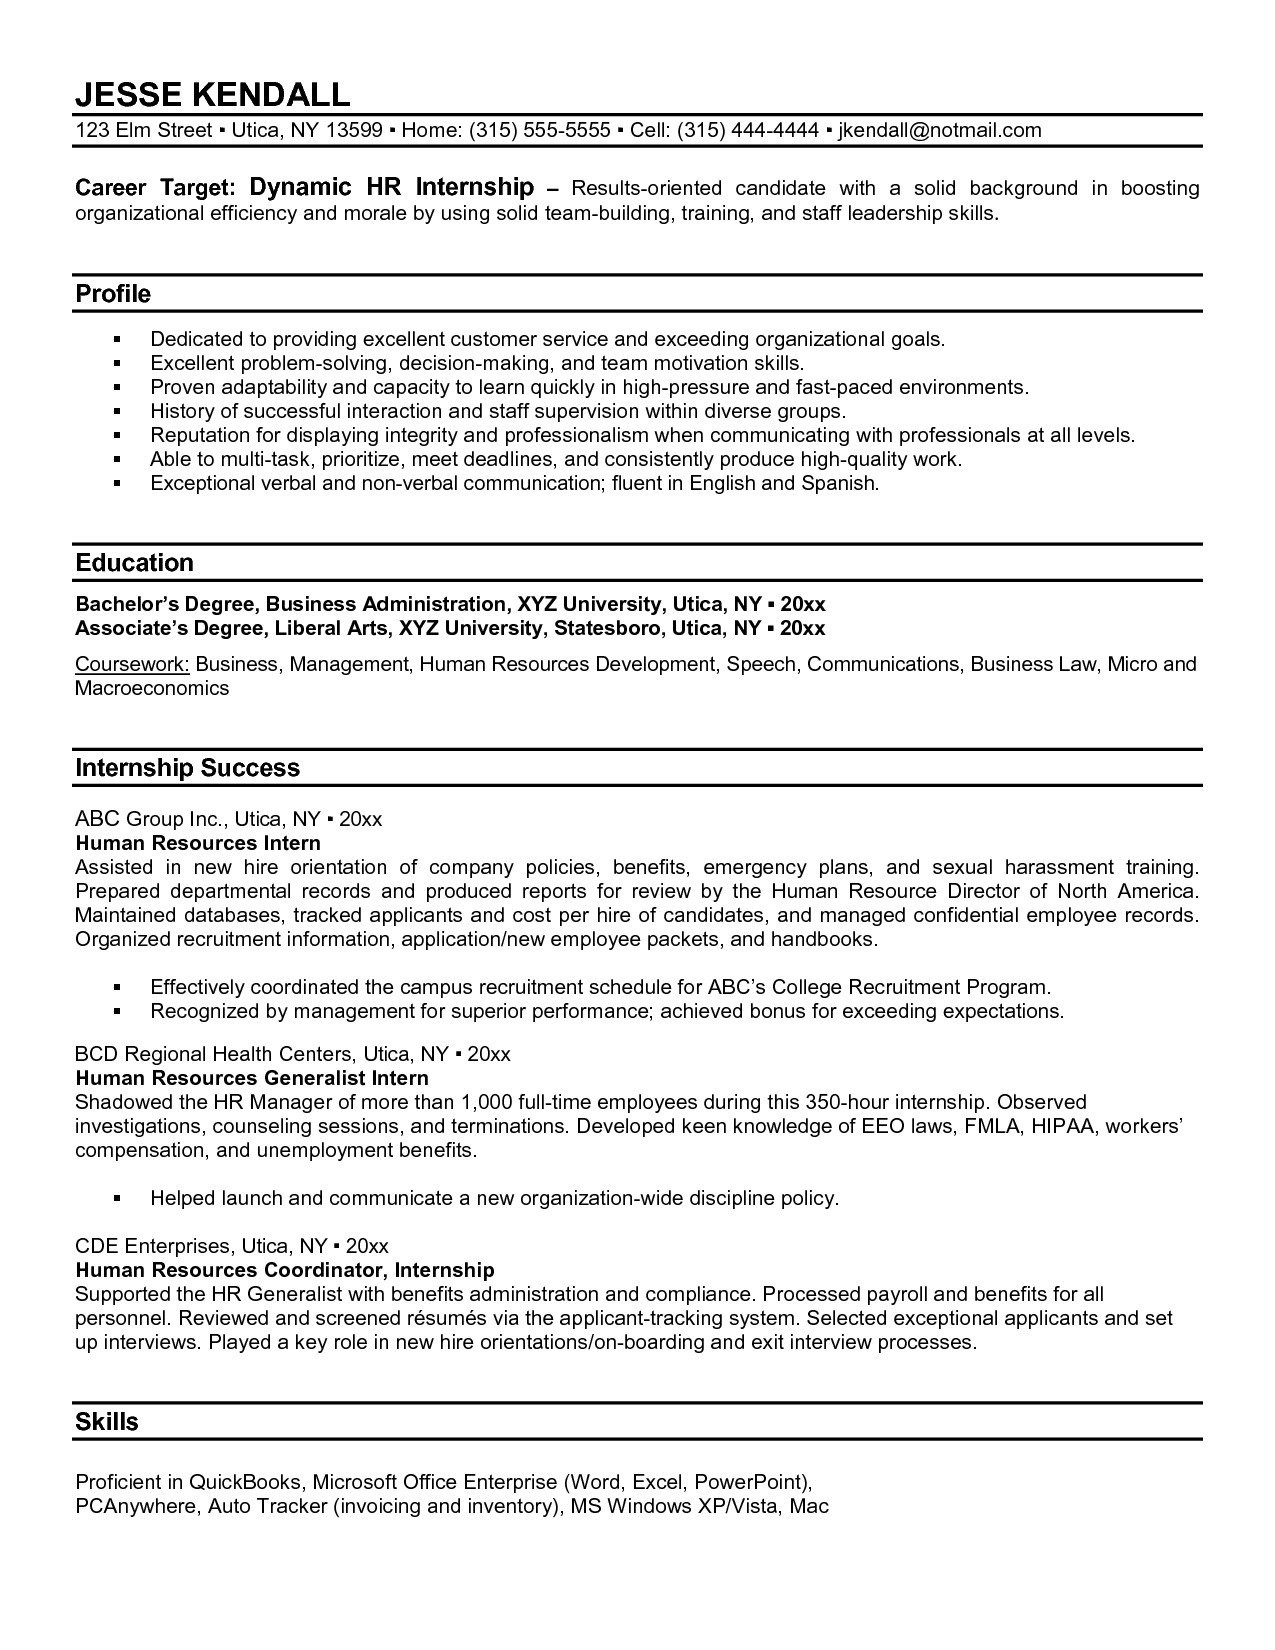 Cover Letter Template for Human Resources - Human Resource Manager Resume Inspirational Job Application Letter